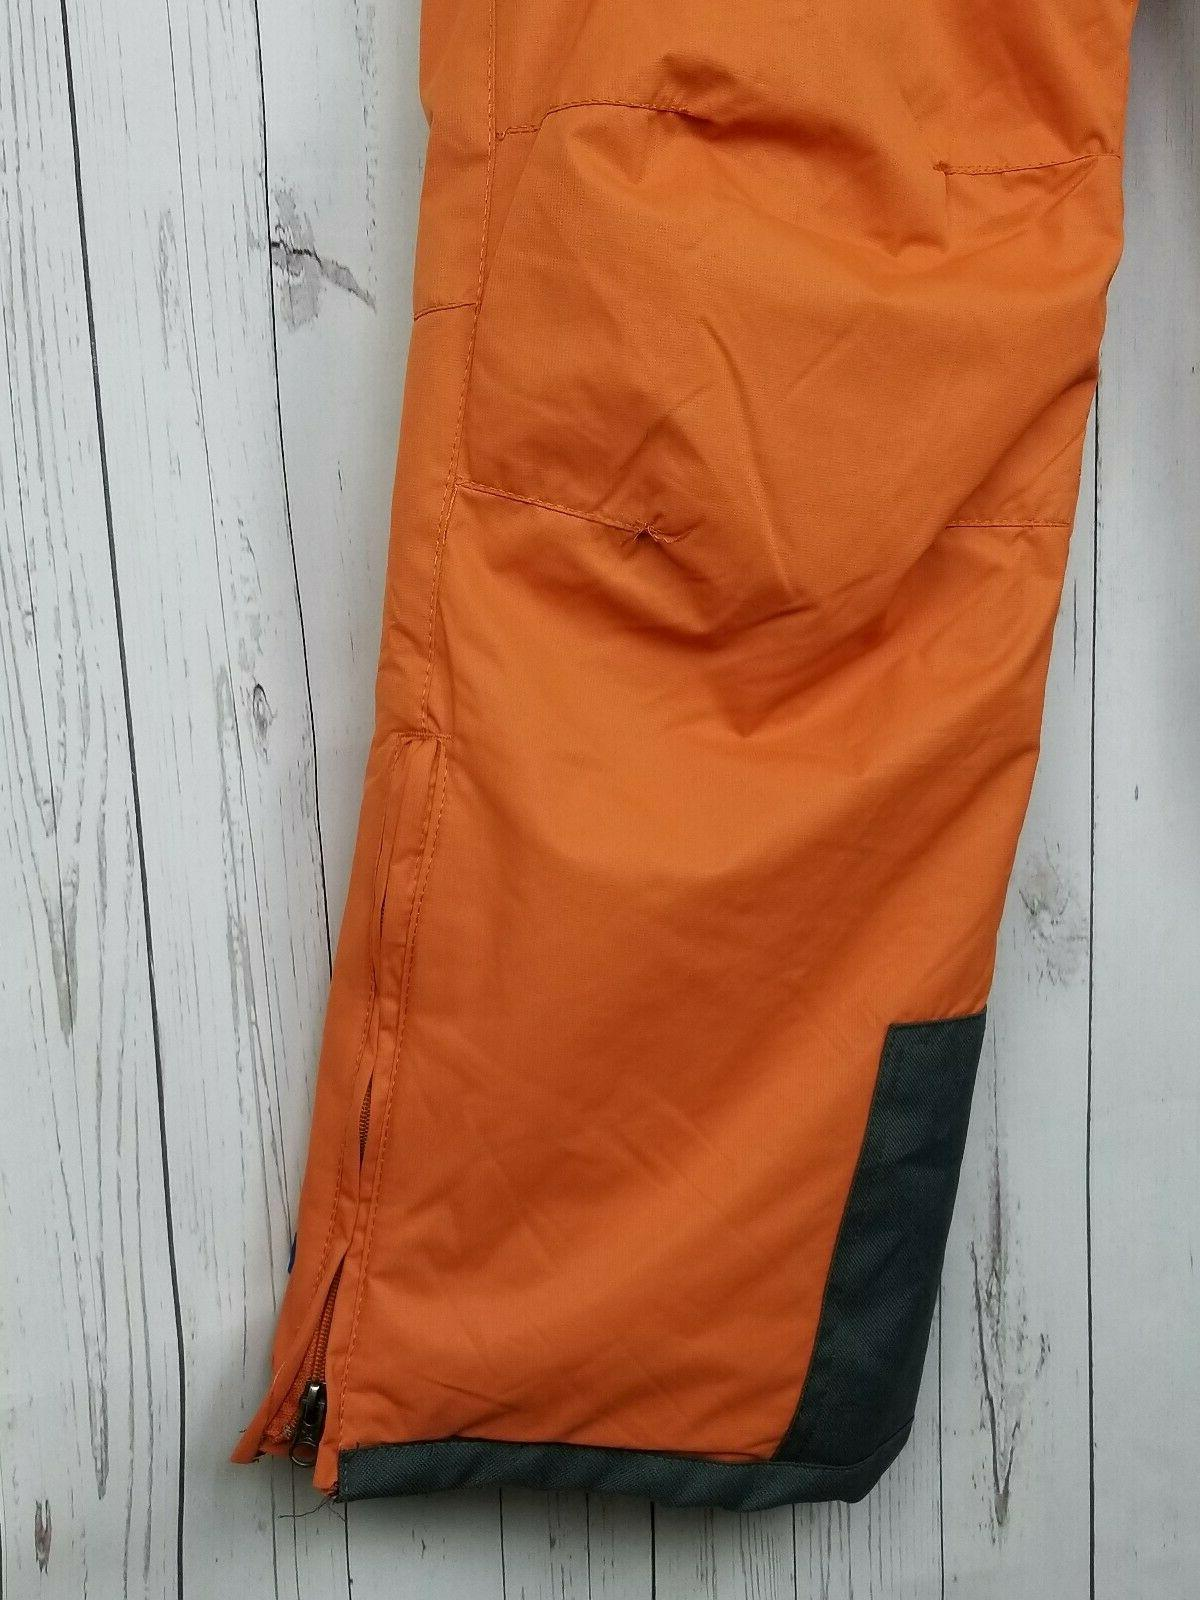 NWT Arctix Cargo Pants Mens Orange Burnt